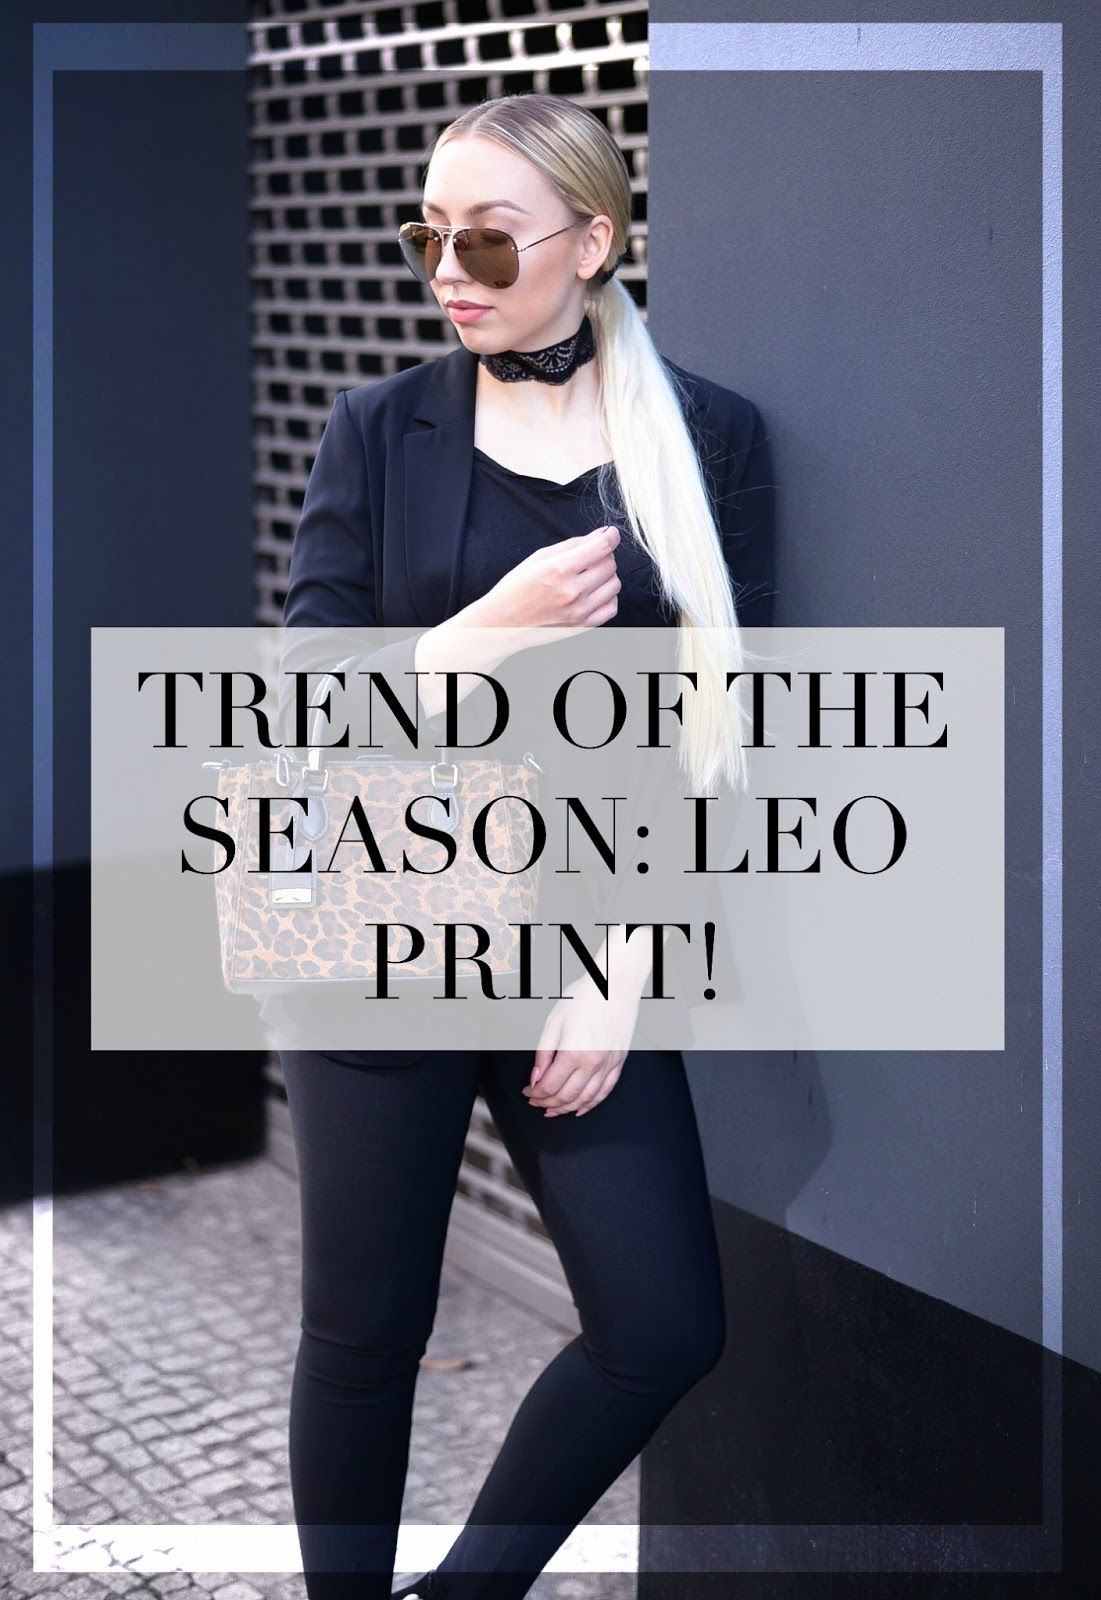 trend of the season: leo print